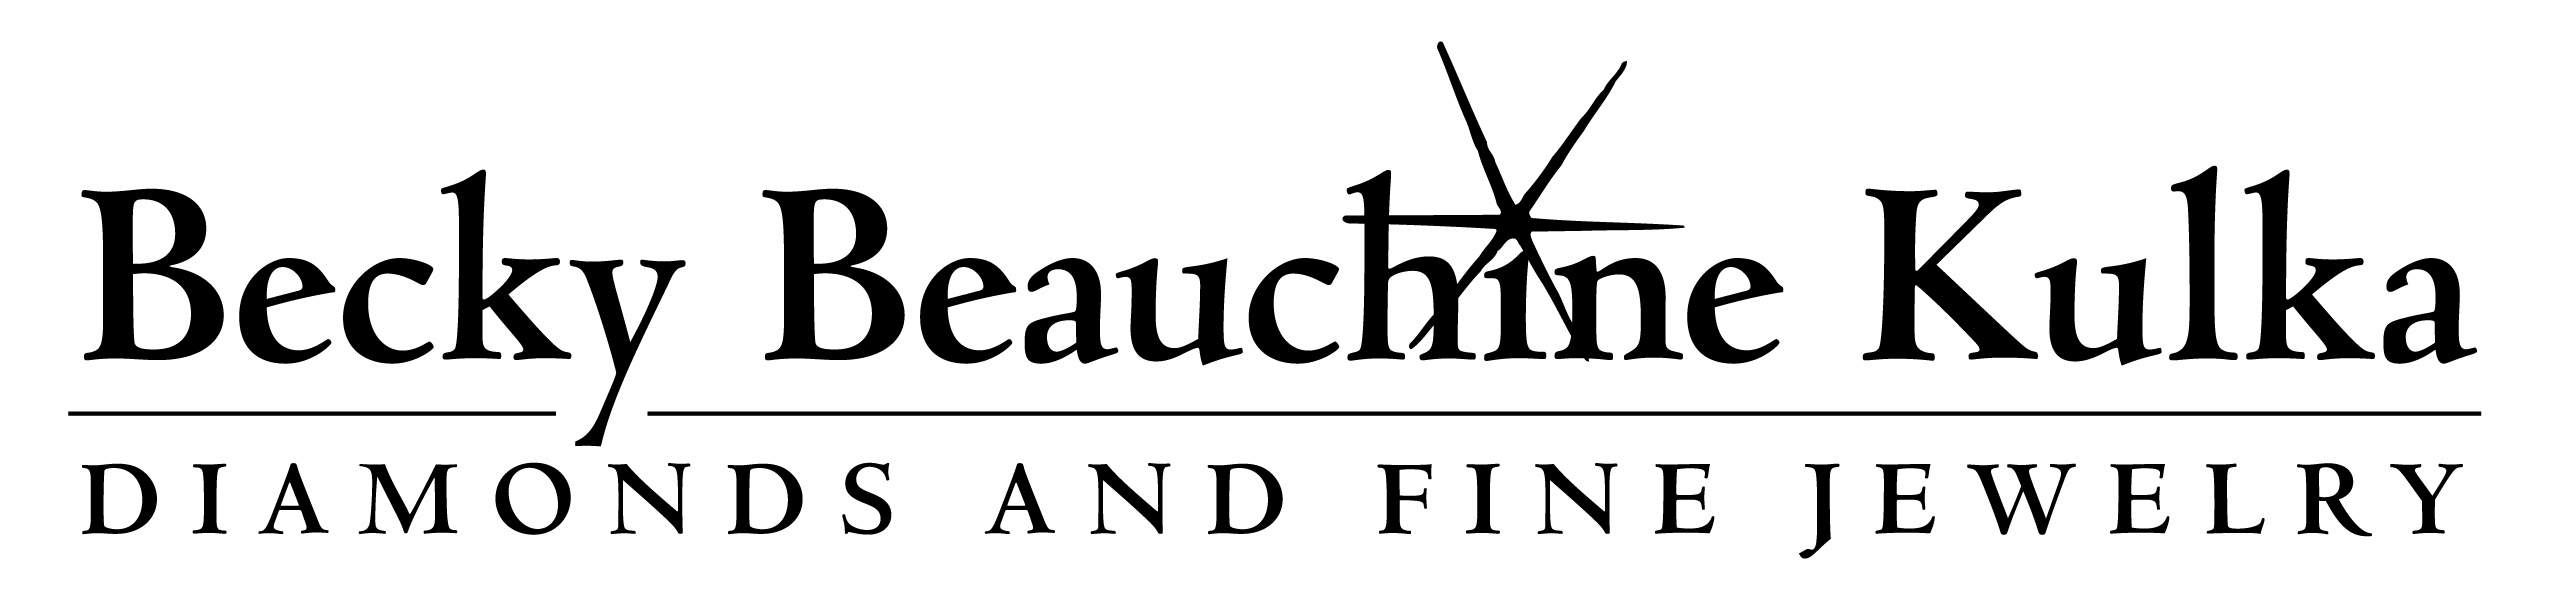 Becky Beauchine Kulka Diamonds & Fine Jewelry logo